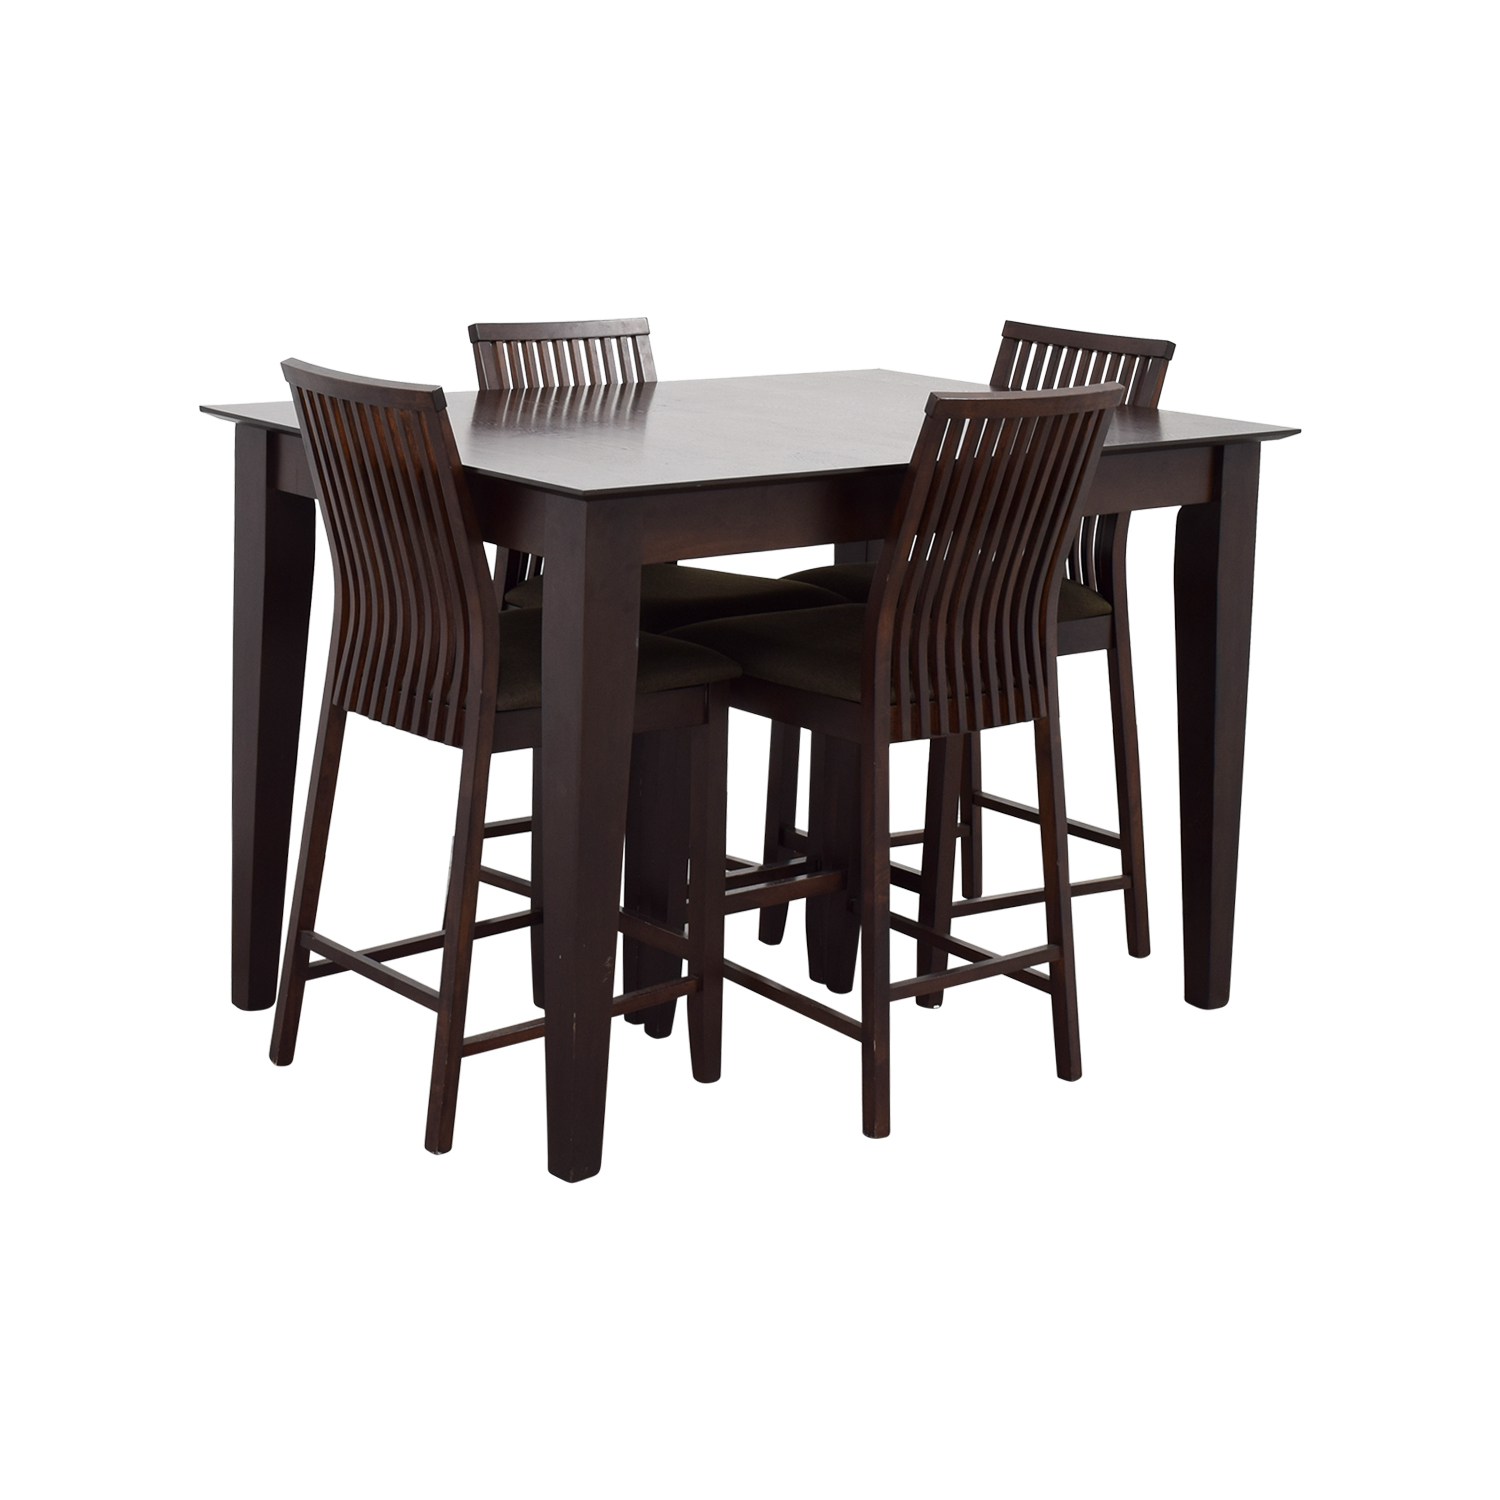 50 off raymour flanigan raymour flanigan dining set tables